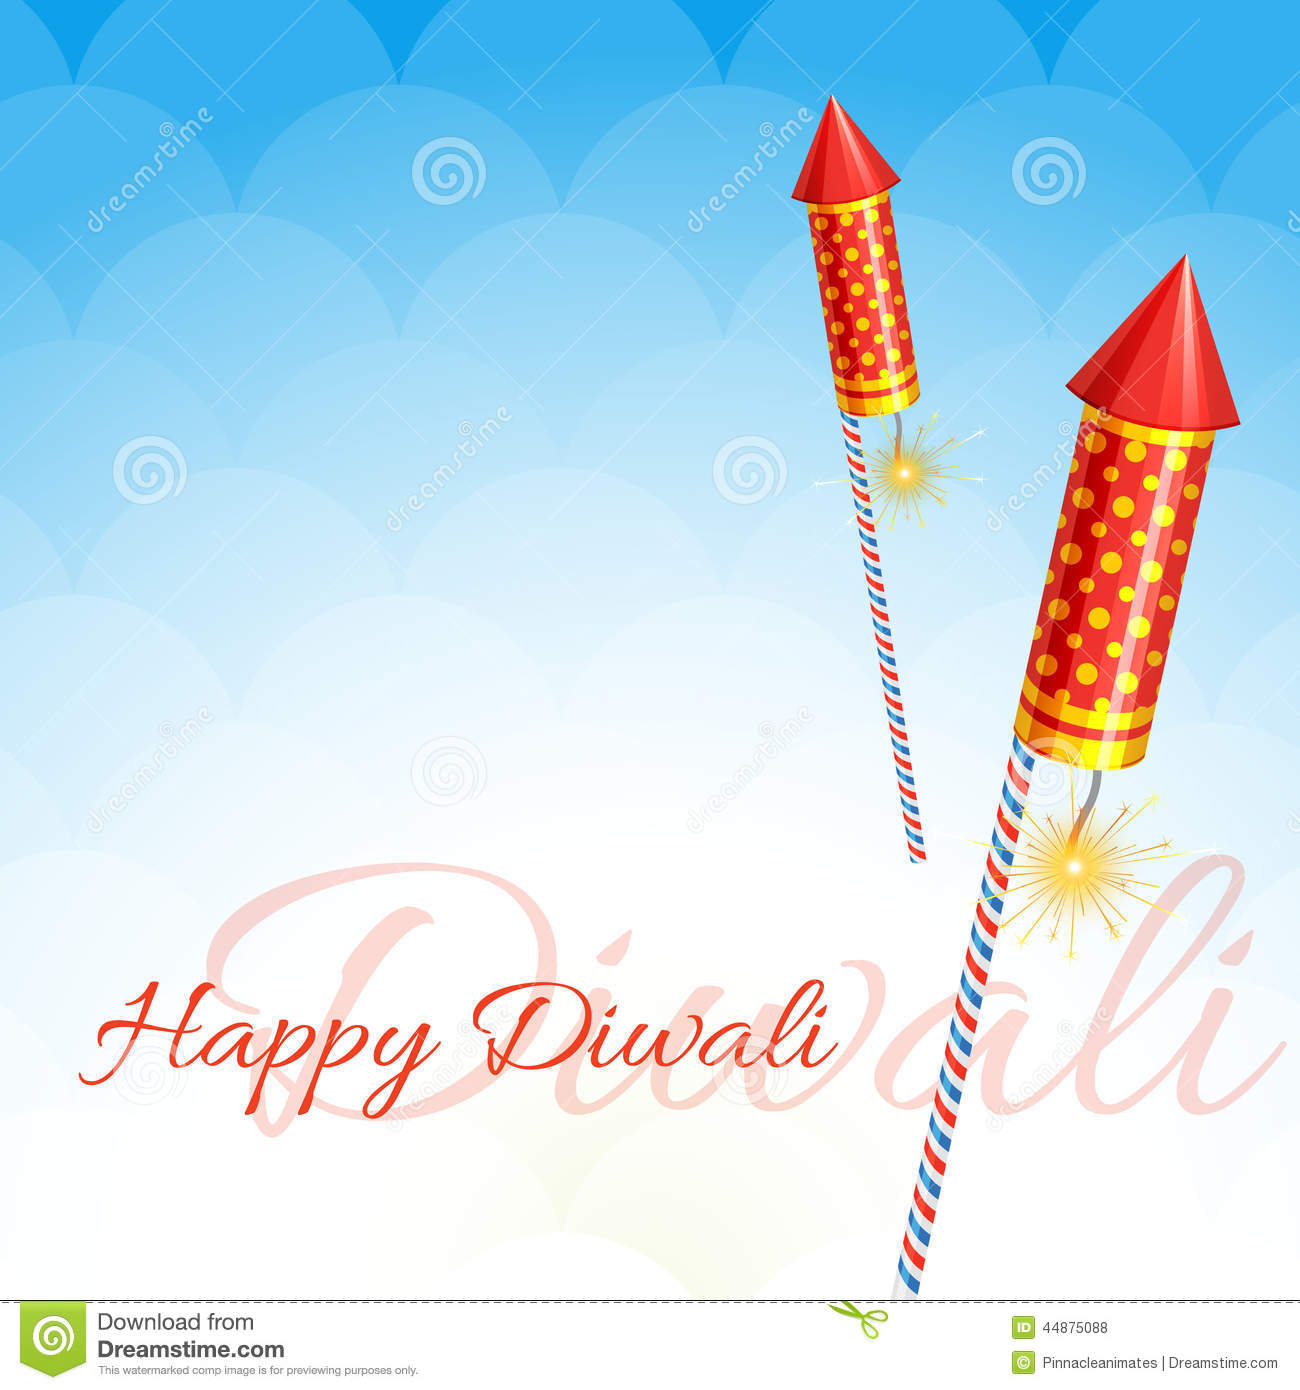 Creative design of diwali